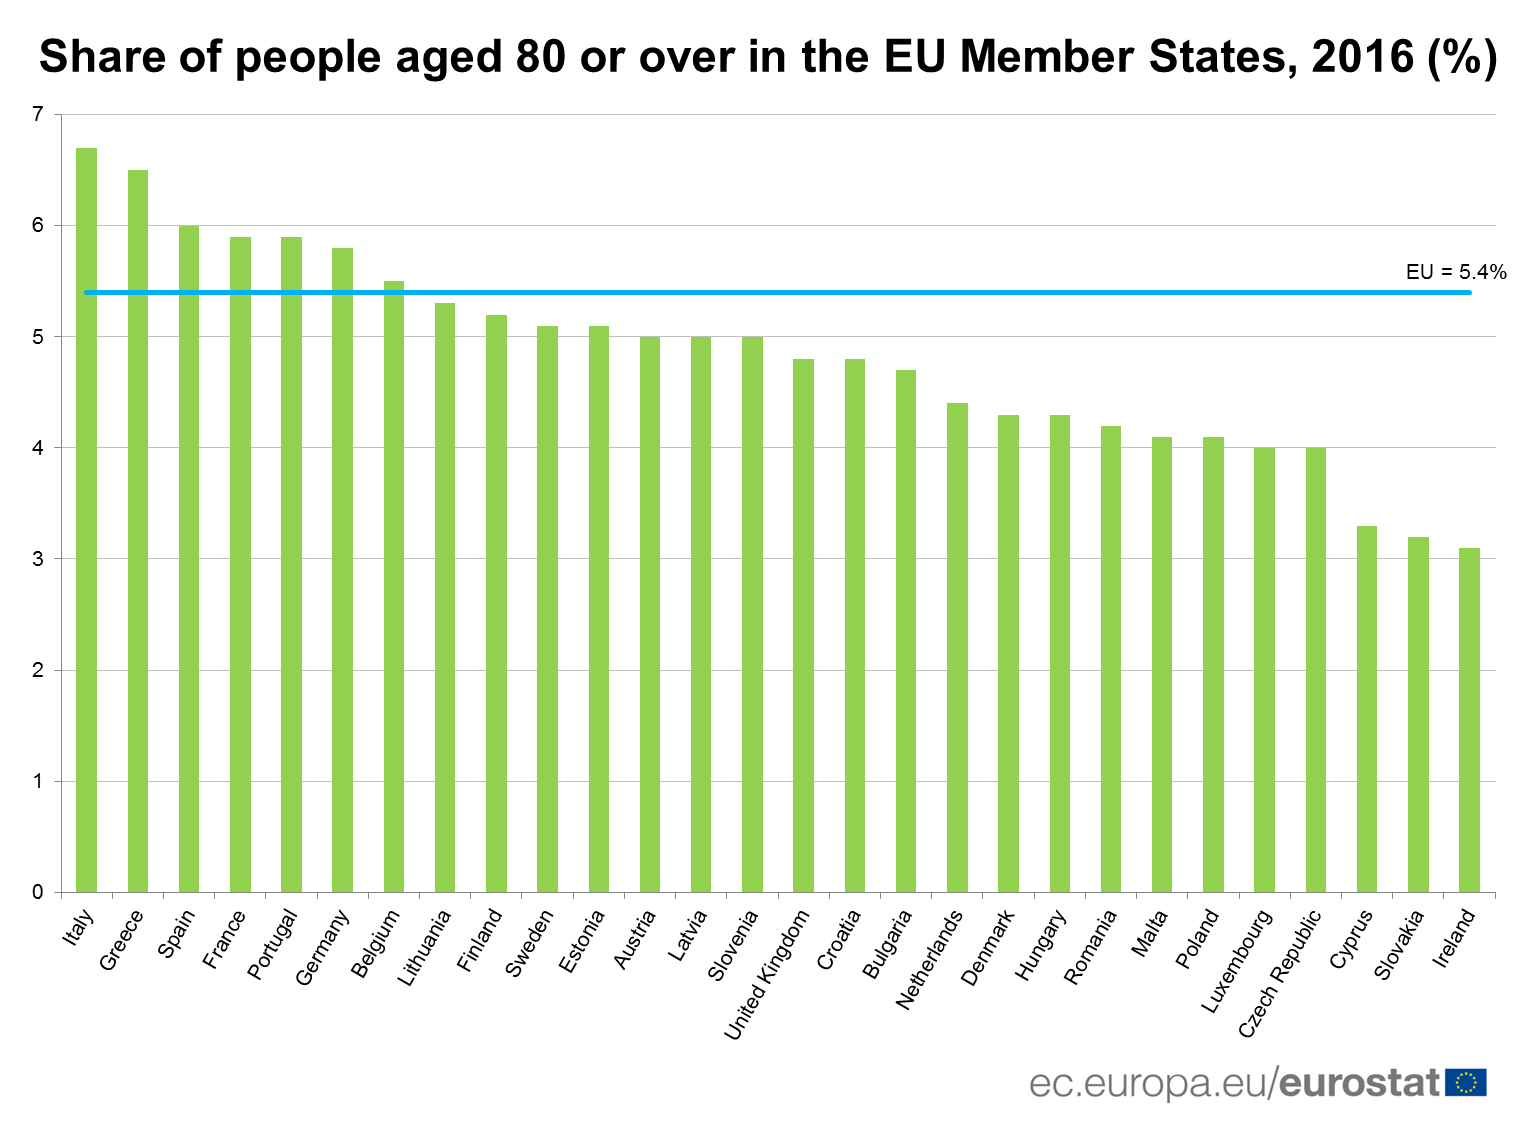 Share of people aged 80 or over in the EU Member States, 2016 (%)